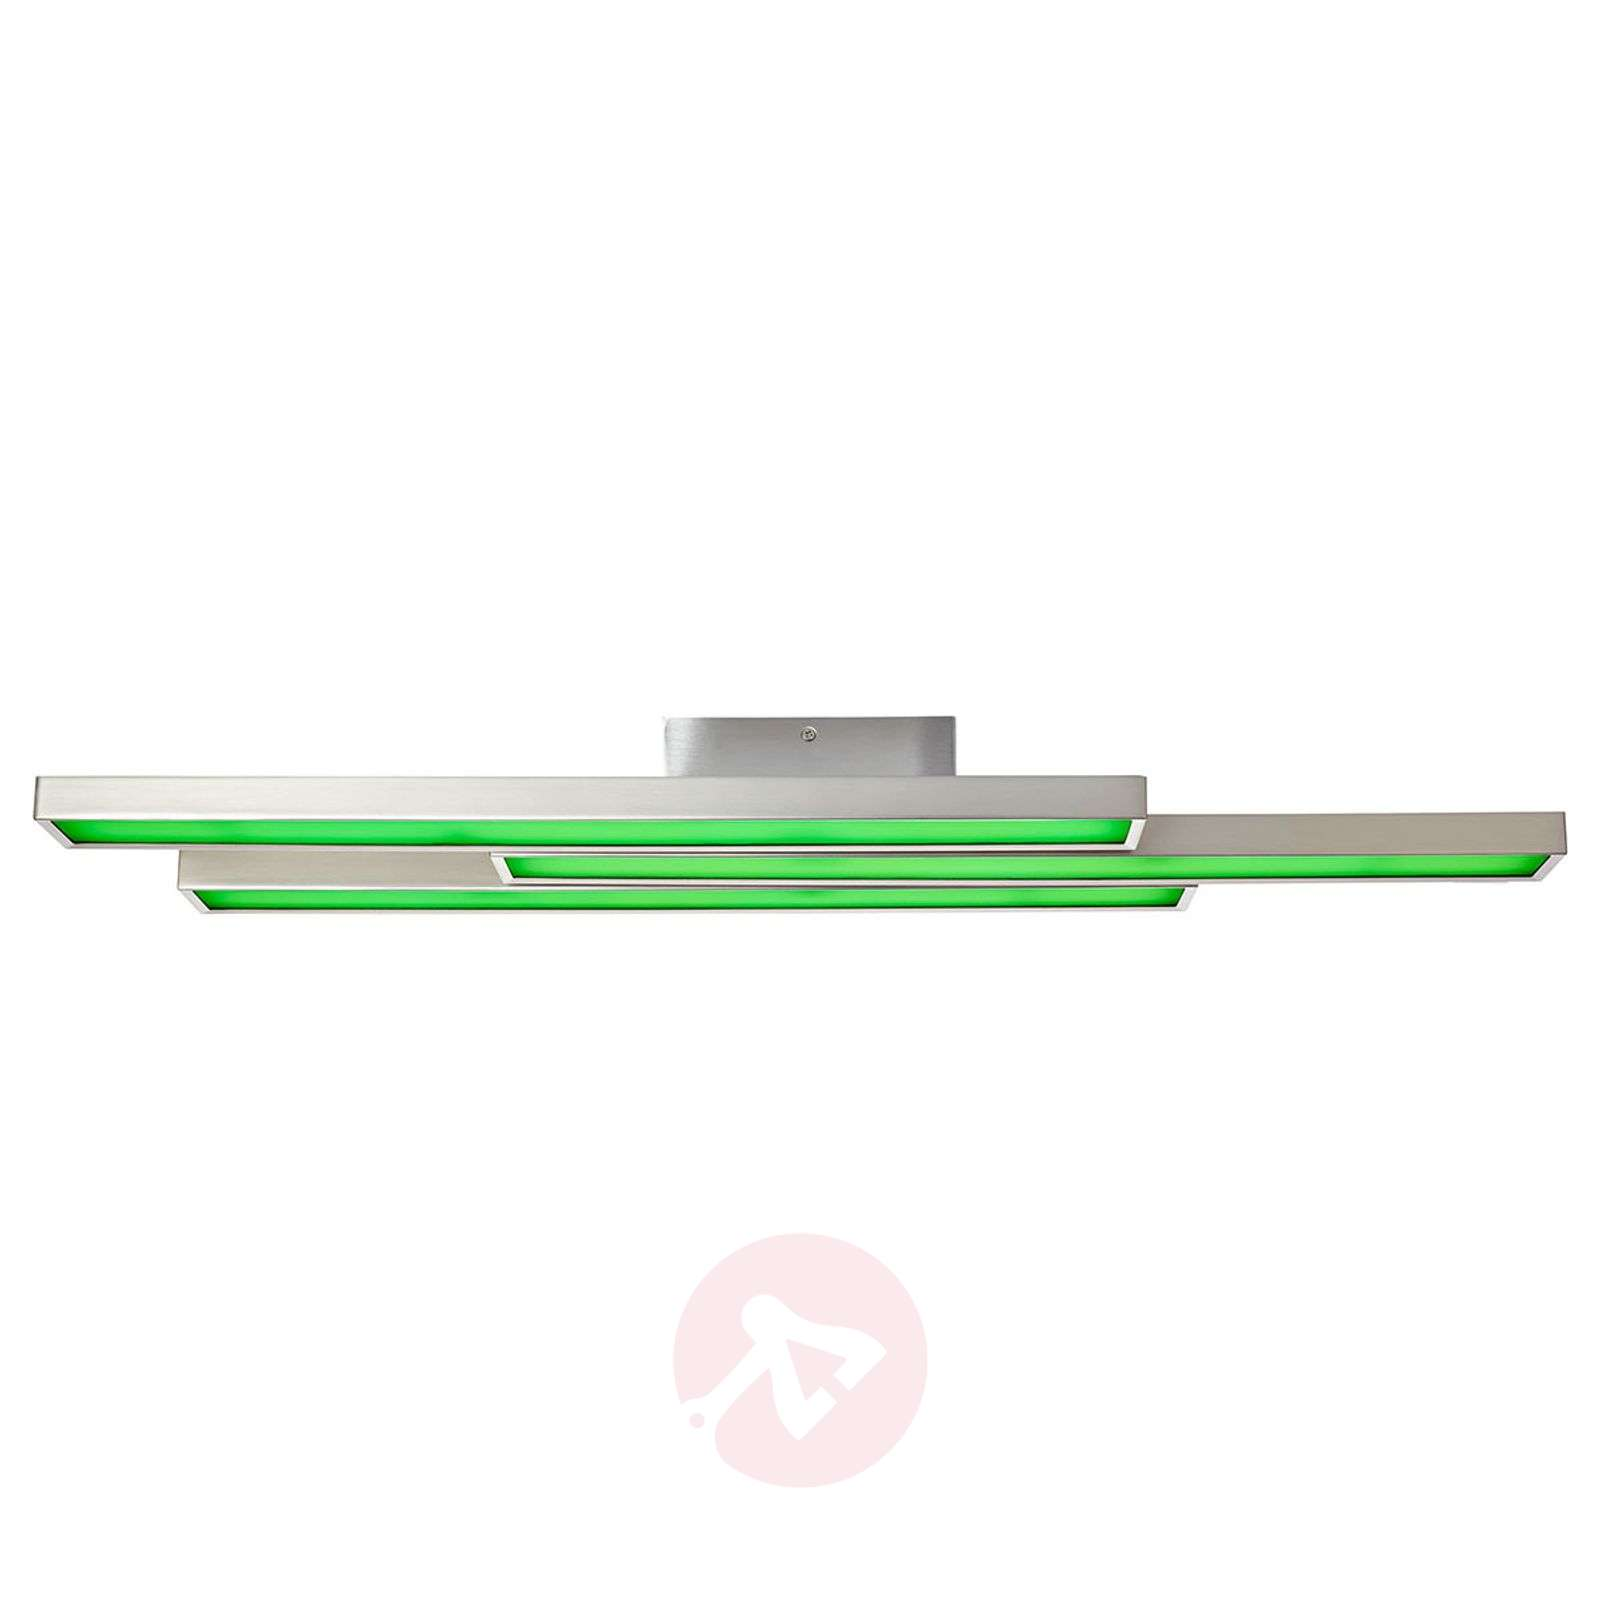 Plafonnier LED WiZ Sword, brillant et astucieux-1509475-01